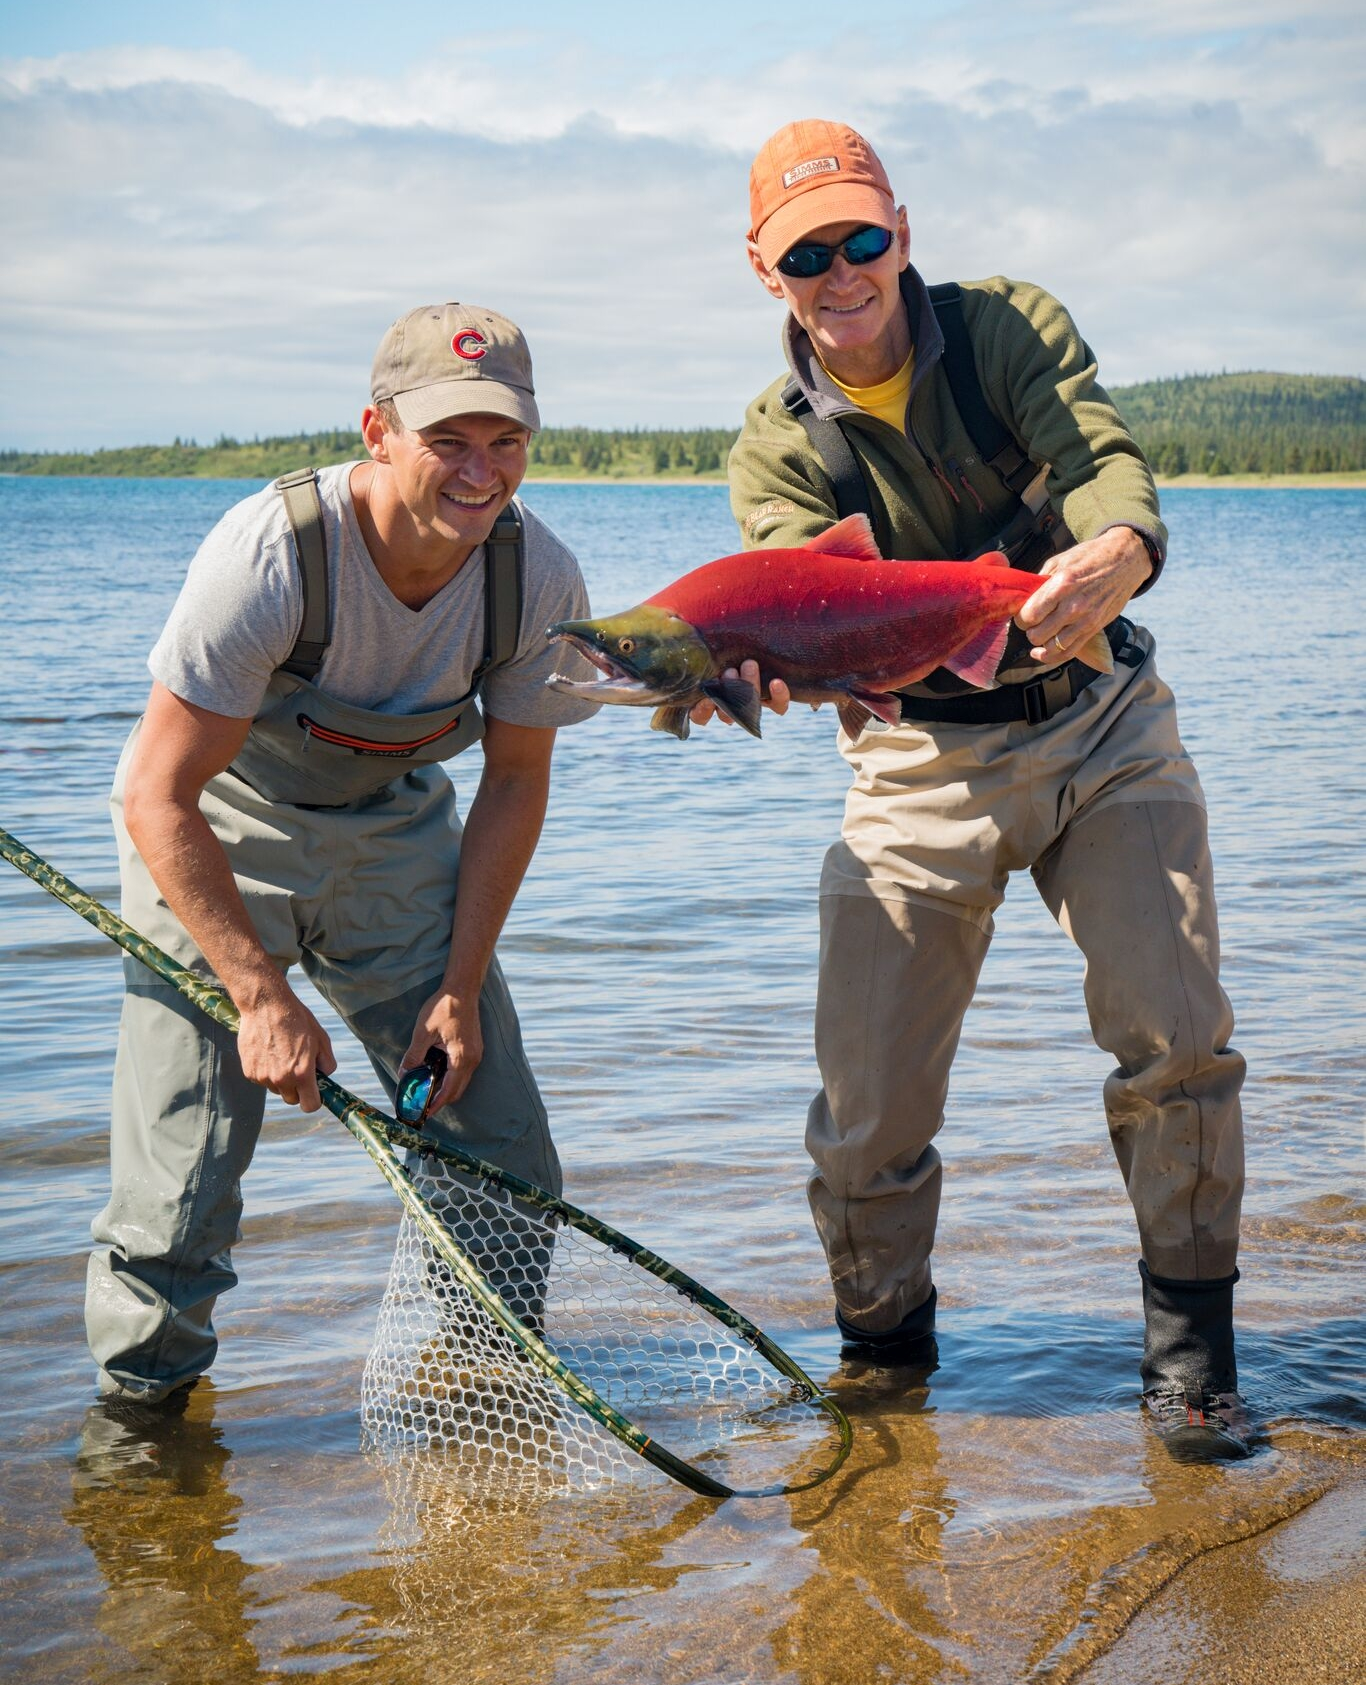 Sockeye/Reds - The most plentiful salmon species in our area. Best fishing is late June through early August.